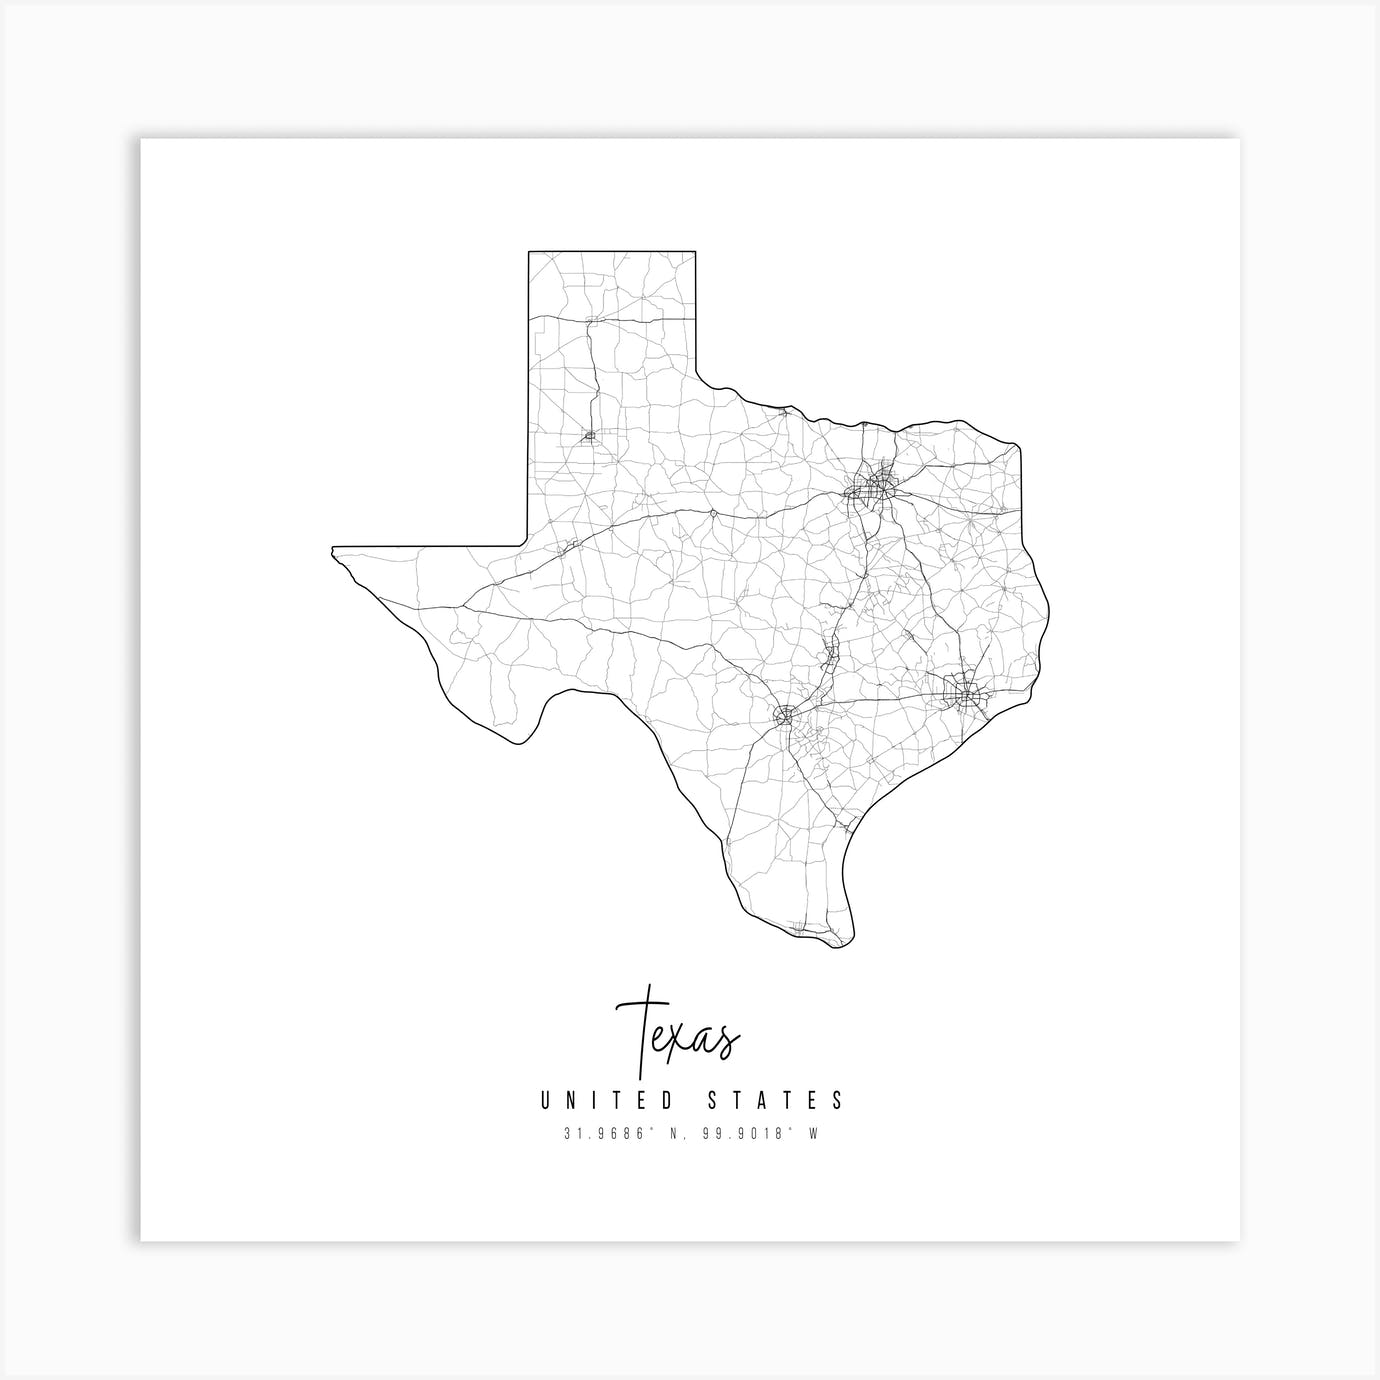 It's just a picture of Printable Maps of Texas intended for north